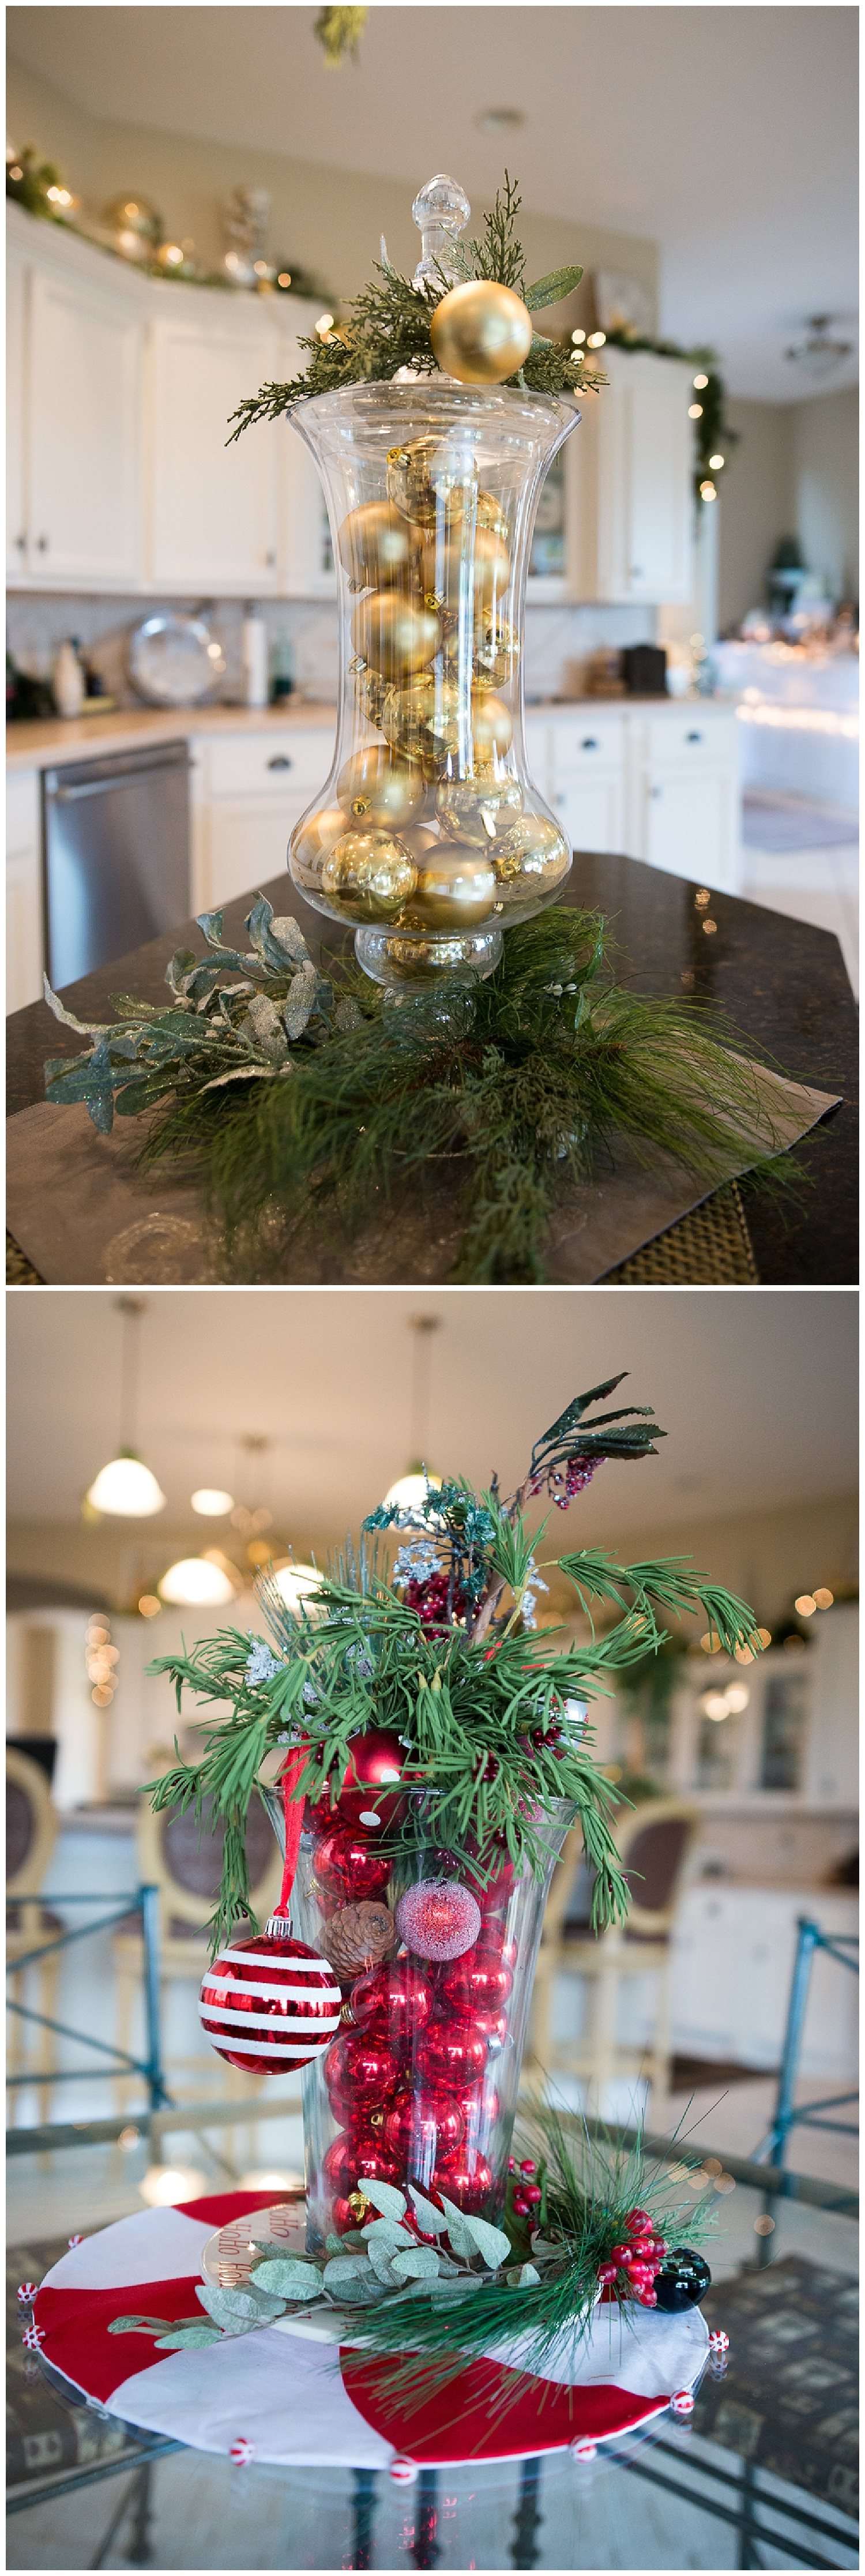 Don't have a lot of decorating space or perhaps you're low on storage space but want to do something?  Try Patty's trick of filling a glass jar with ornaments.  Simple and striking.